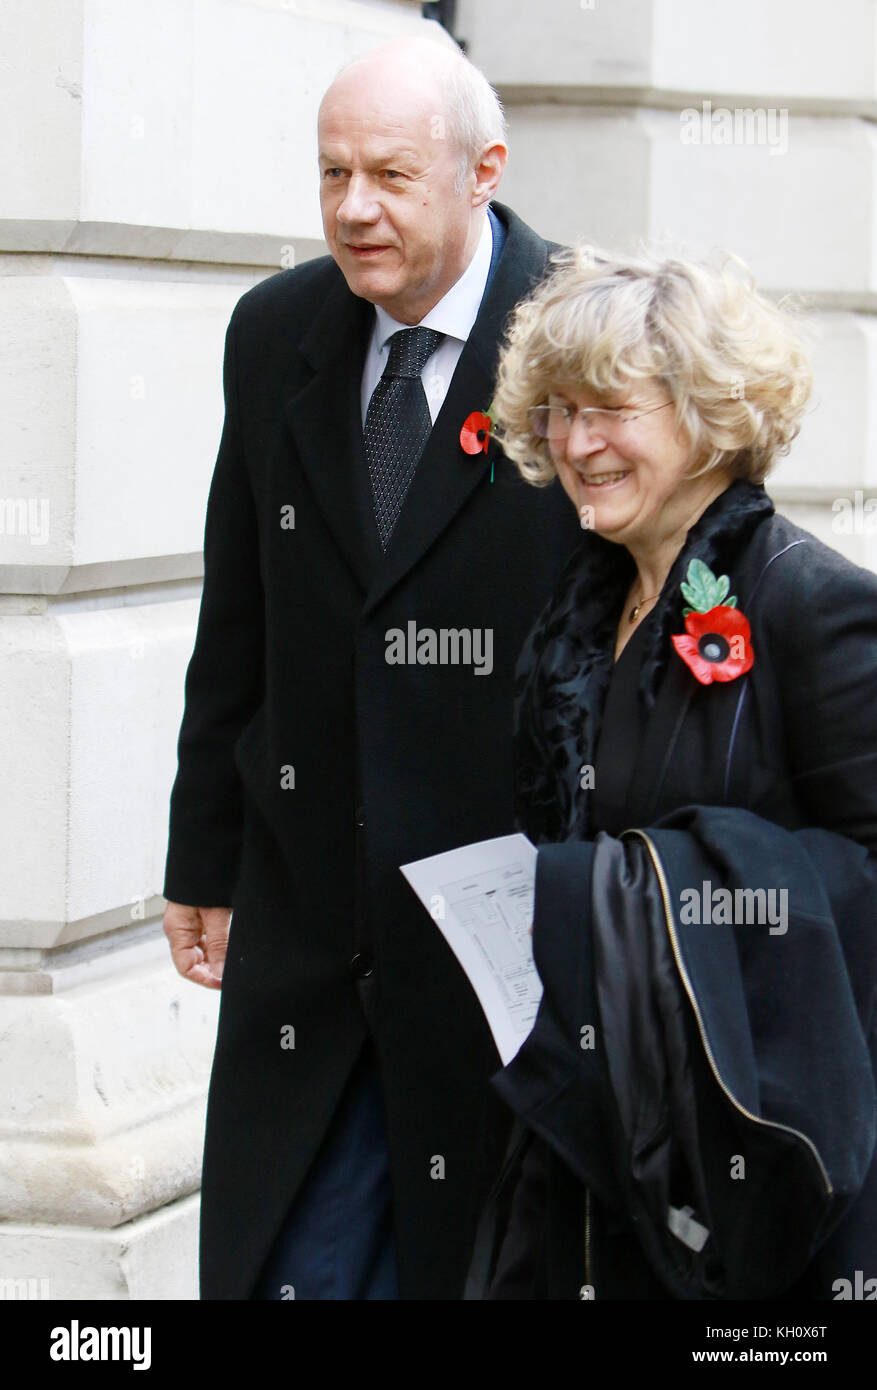 London, UK. 12th Nov, 2017. Damian Green arrives for the annual Remembrance Day service through Downing Street en - Stock Image